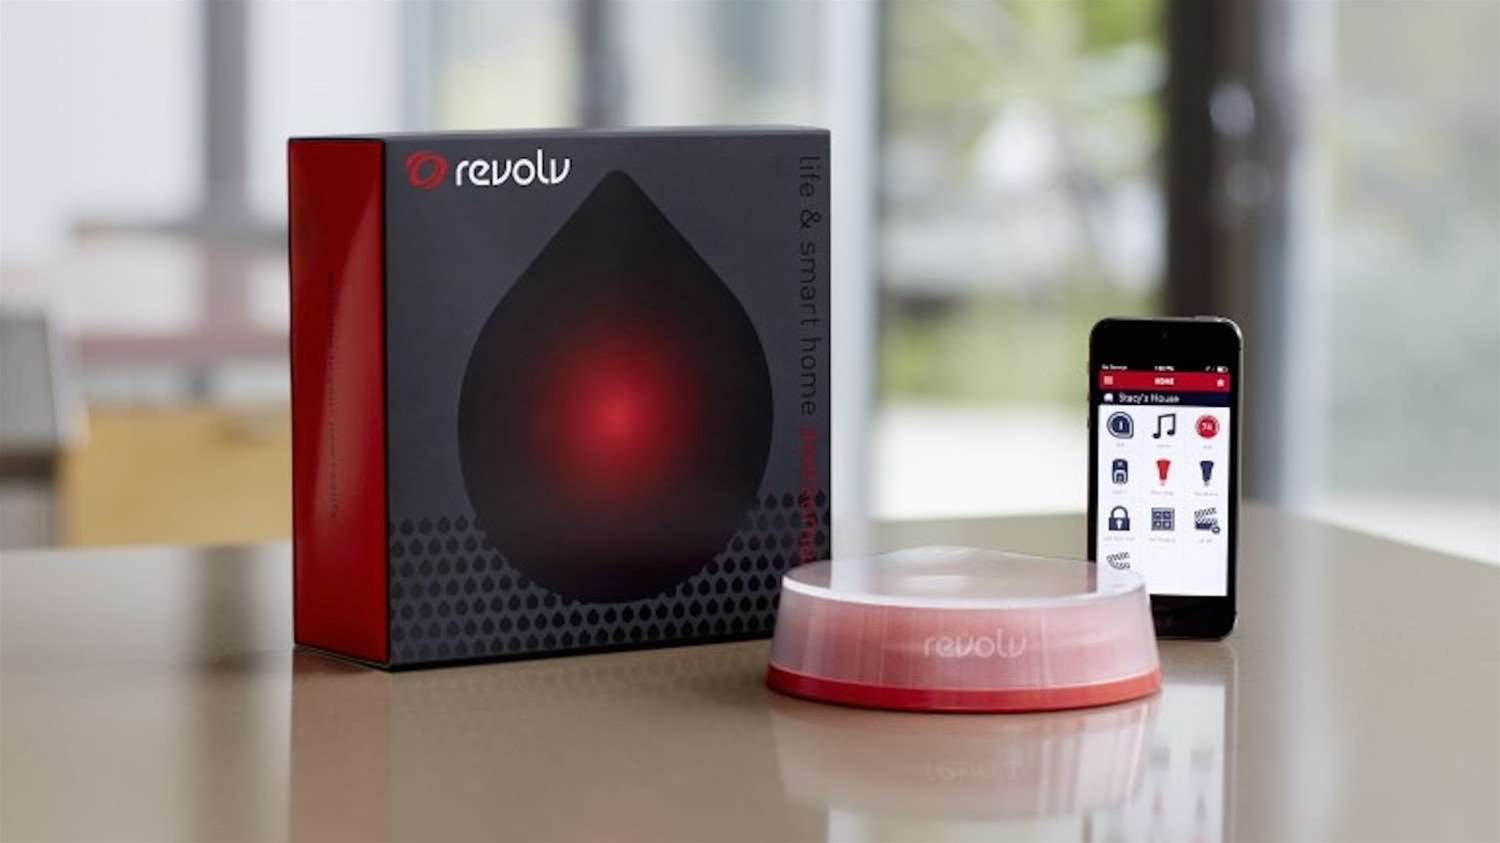 Nest in damage control following Revolv shutdown plans